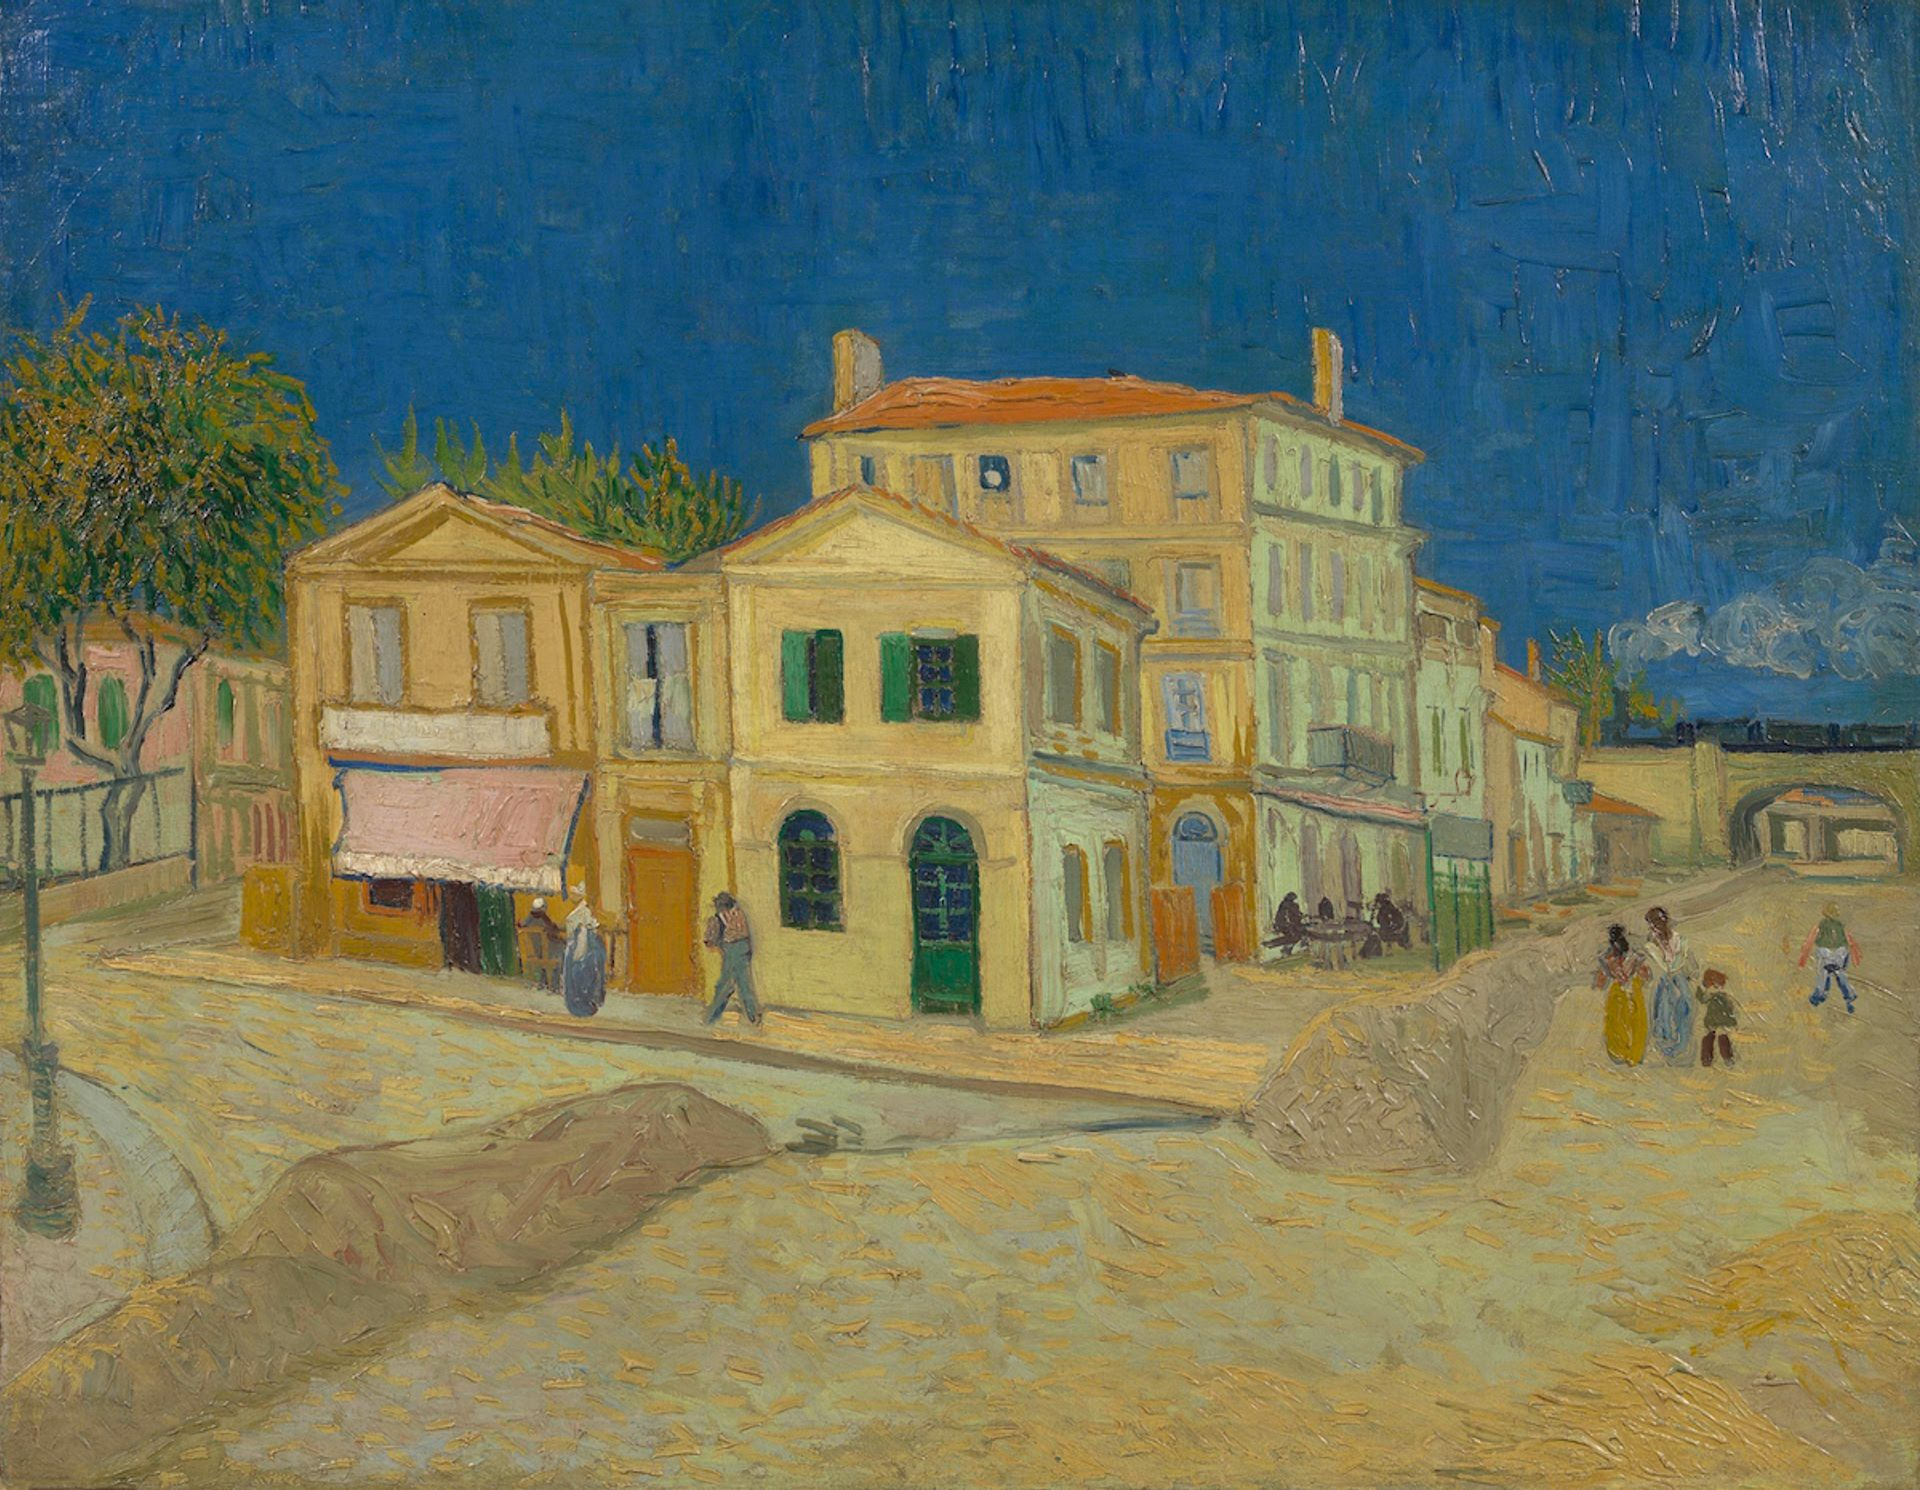 Vincent van Gogh, The Yellow House, September 1888 Van Gogh Museum, Amsterdam (Vincent van Gogh Foundation)